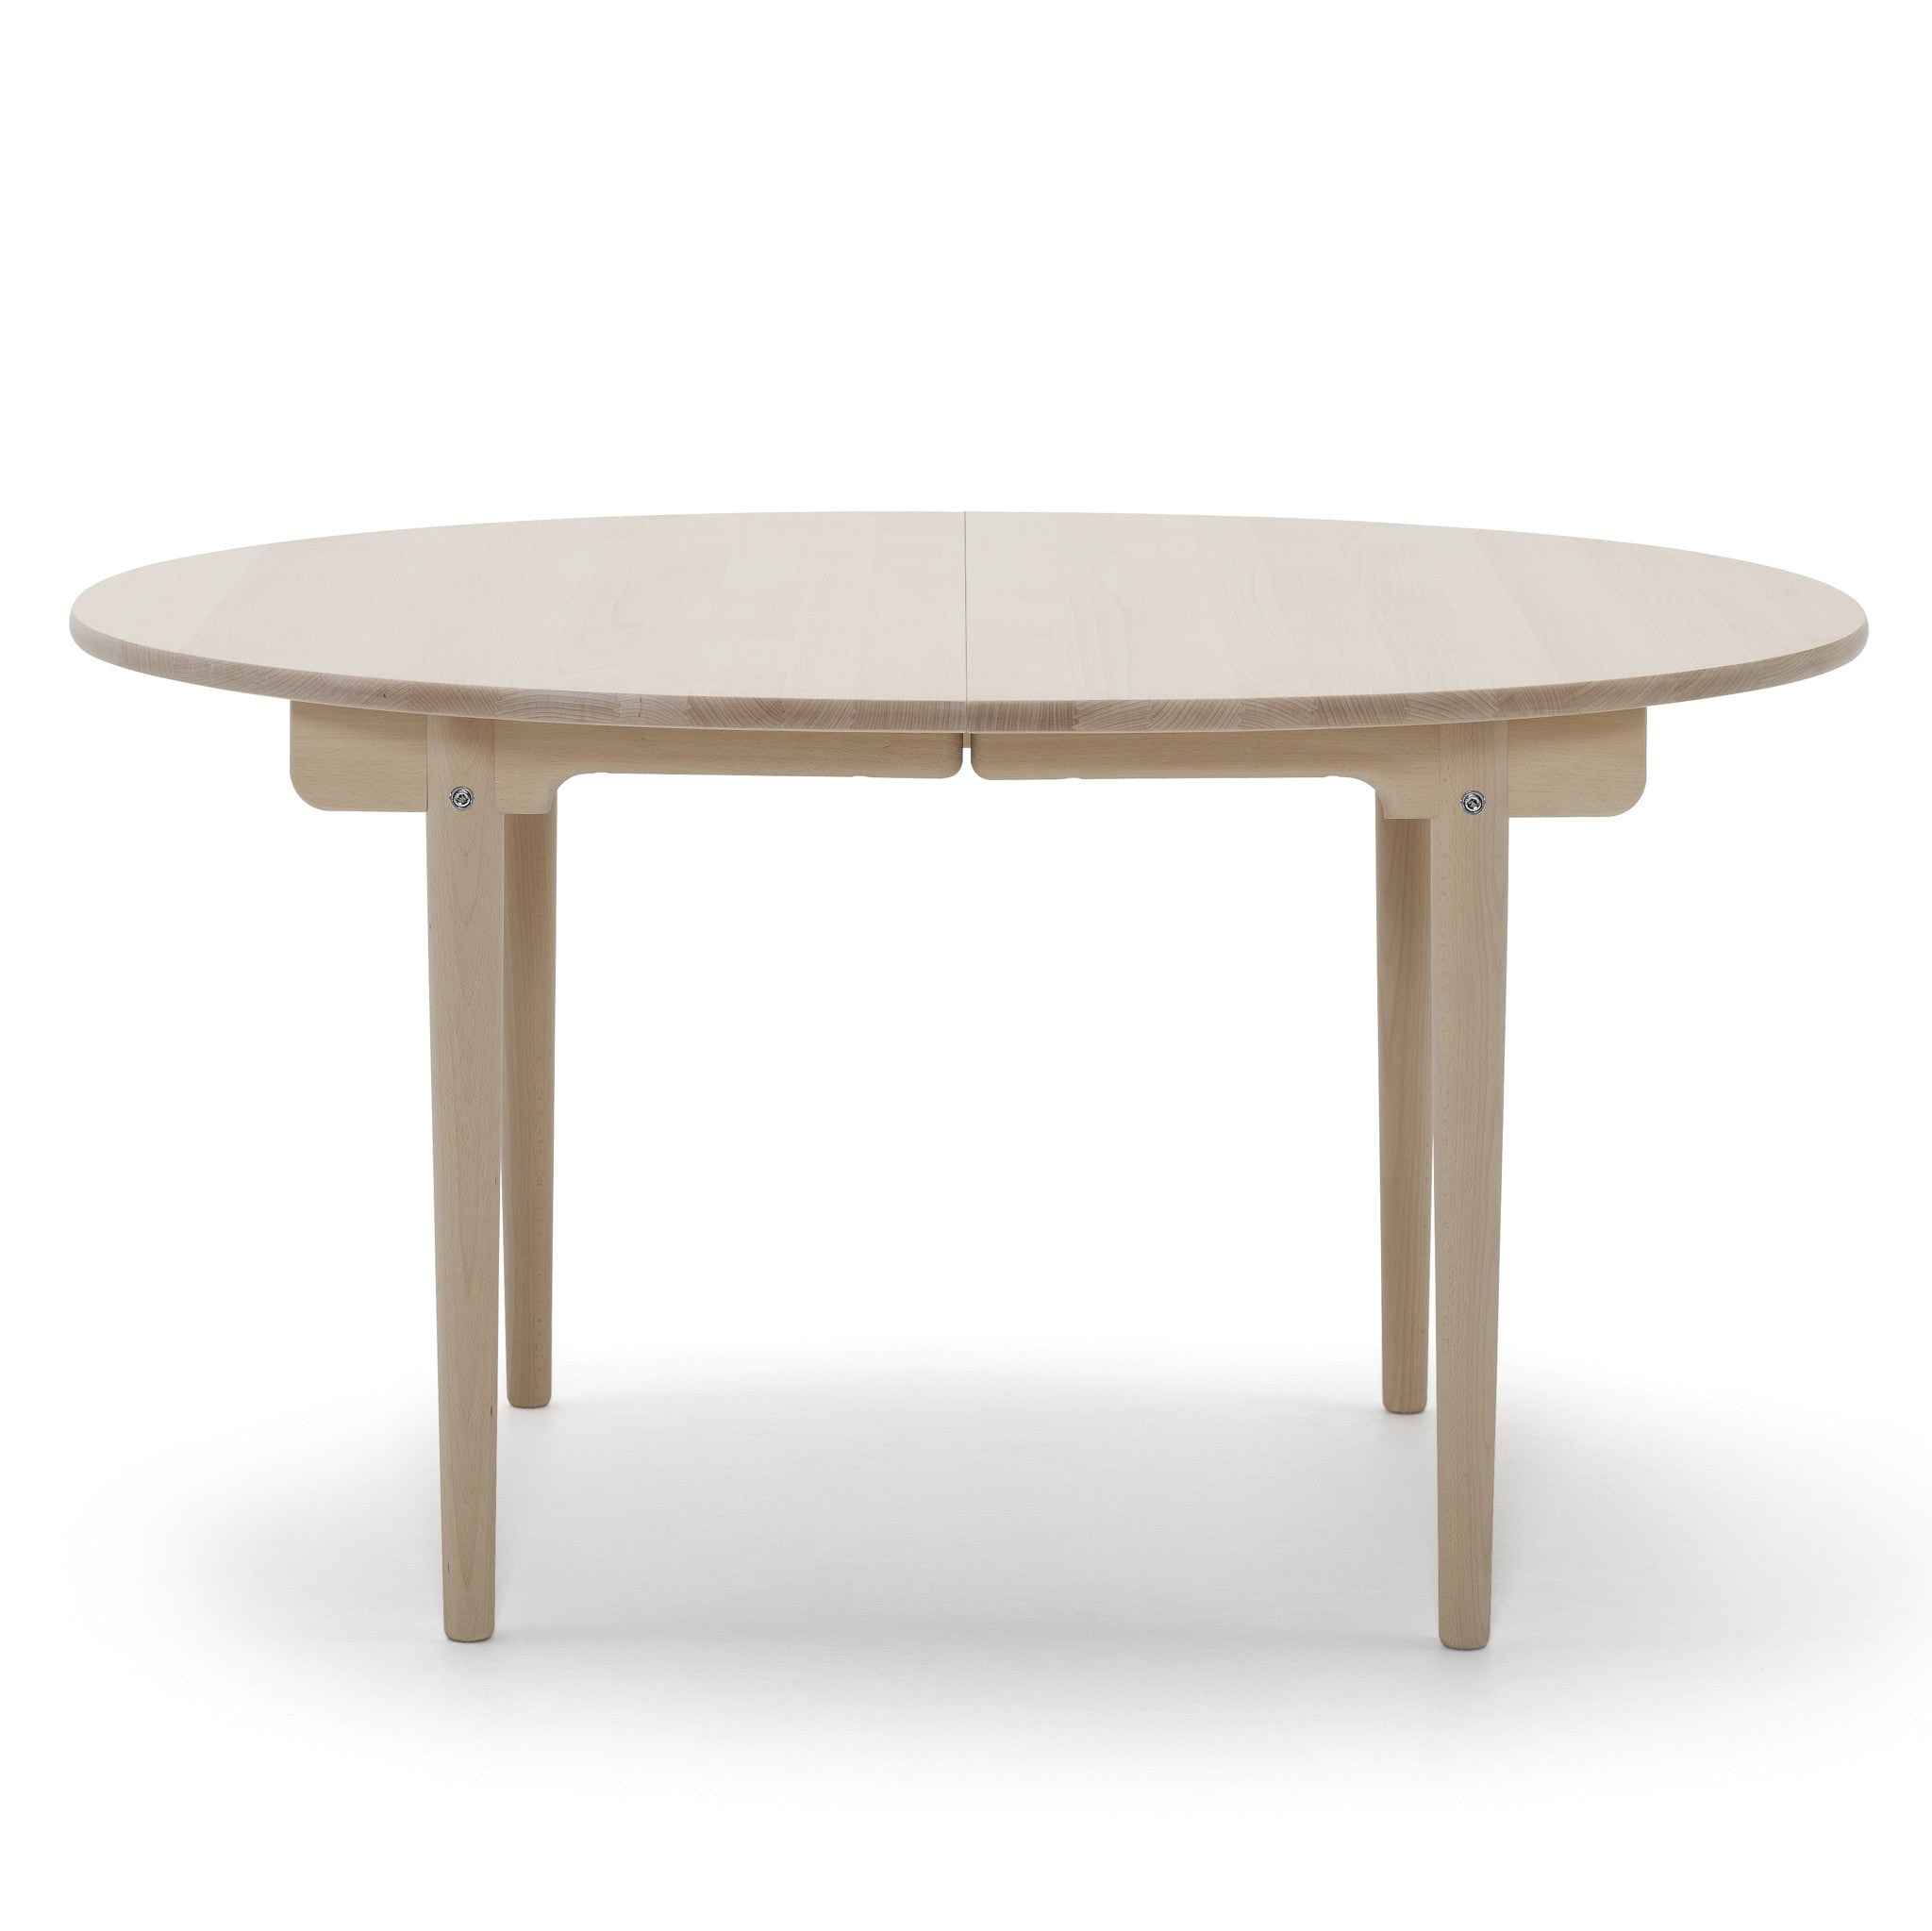 CH337 Dining Table by Carl Hansen & Søn